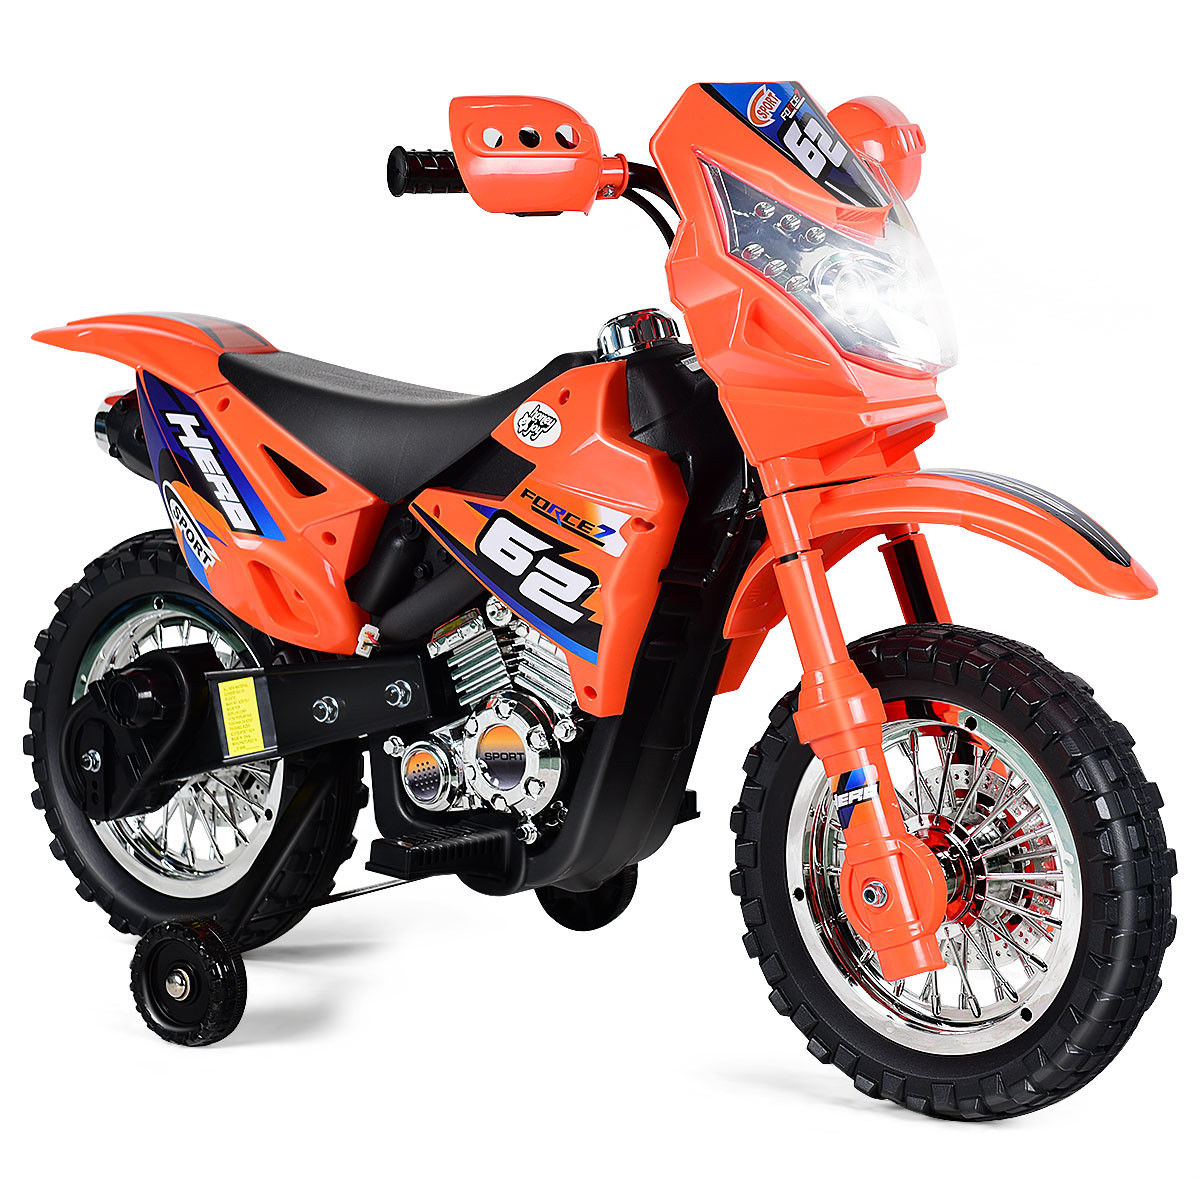 Click here to buy Costway Kids Ride On Motorcycle with Training Wheel 6V Battery Powered Electric Toy by Costway.